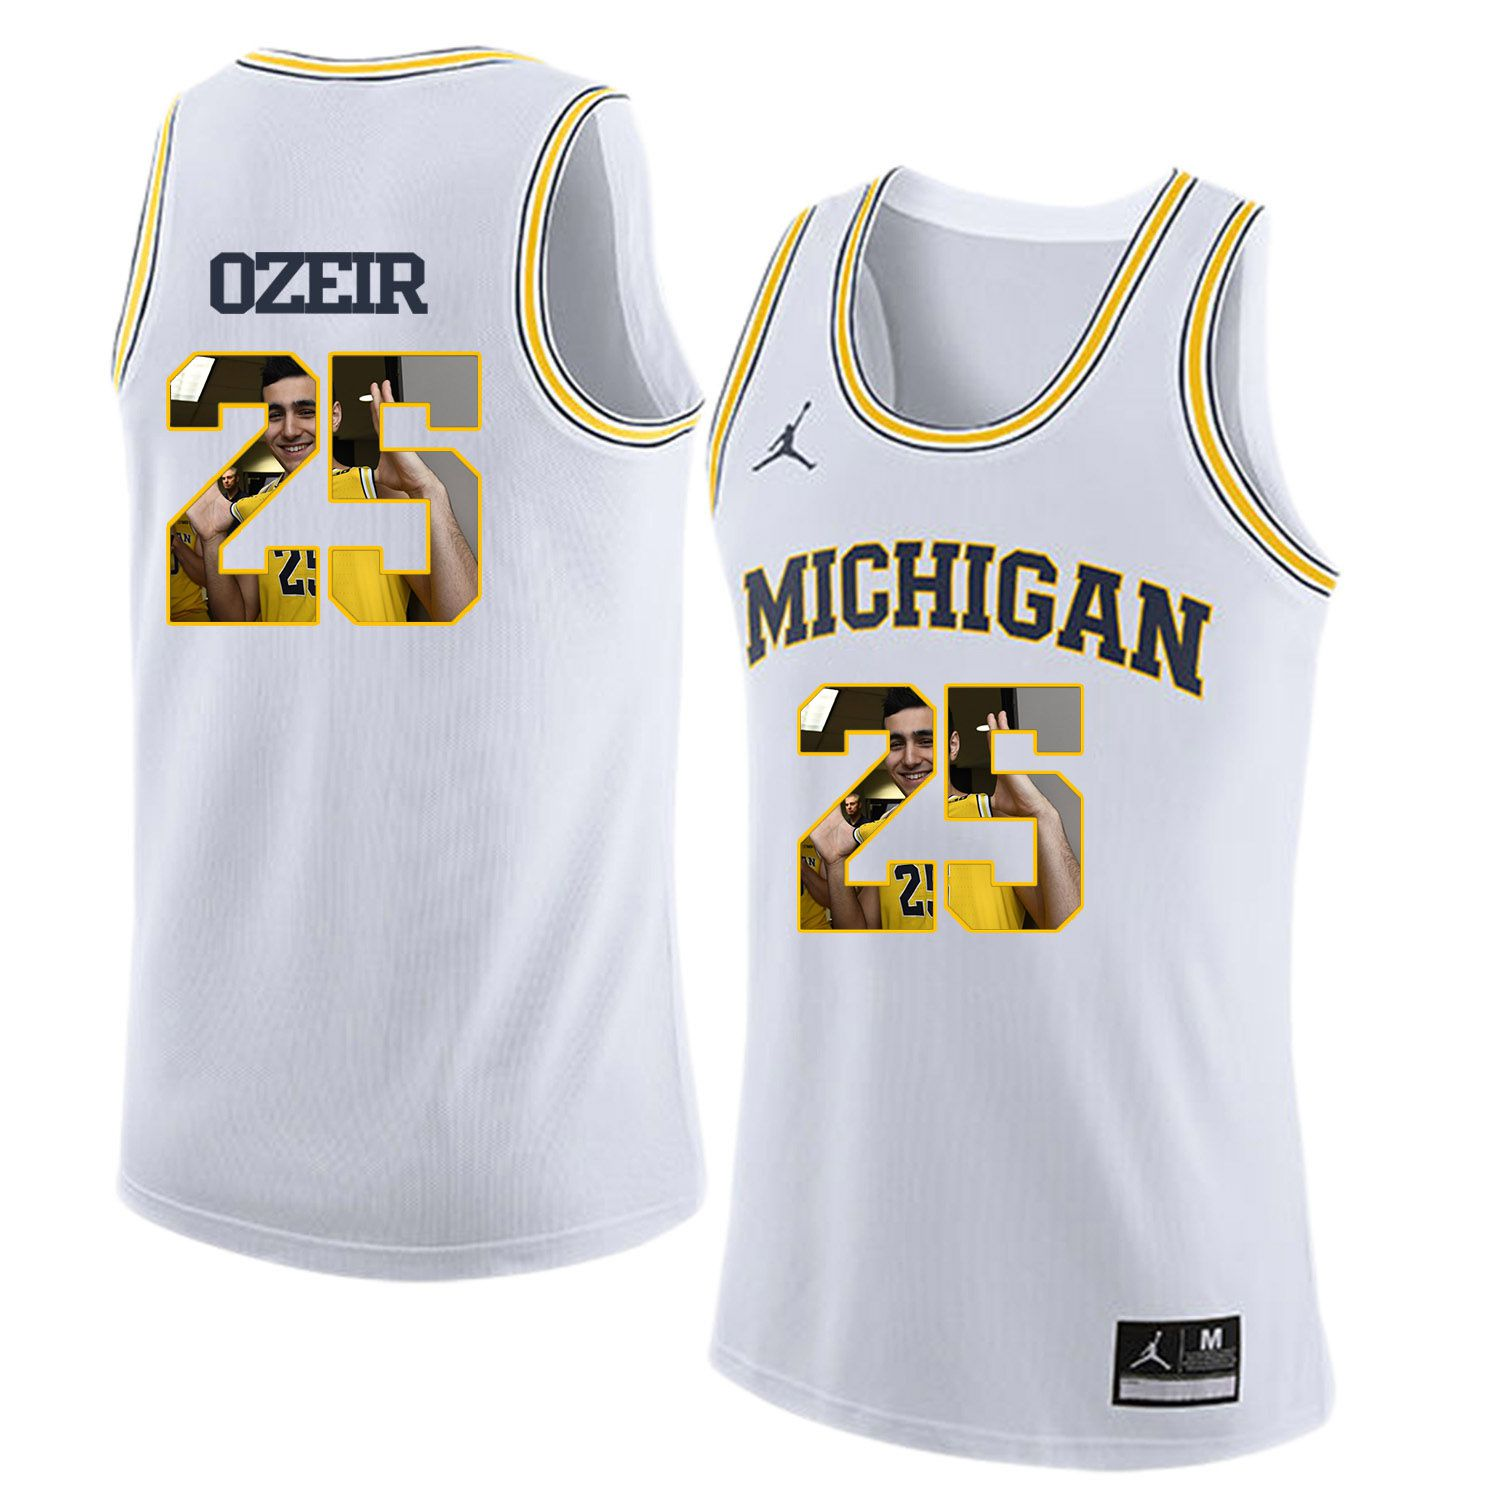 Men Jordan University of Michigan Basketball White 25 Ozeir Fashion Edition Customized NCAA Jerseys